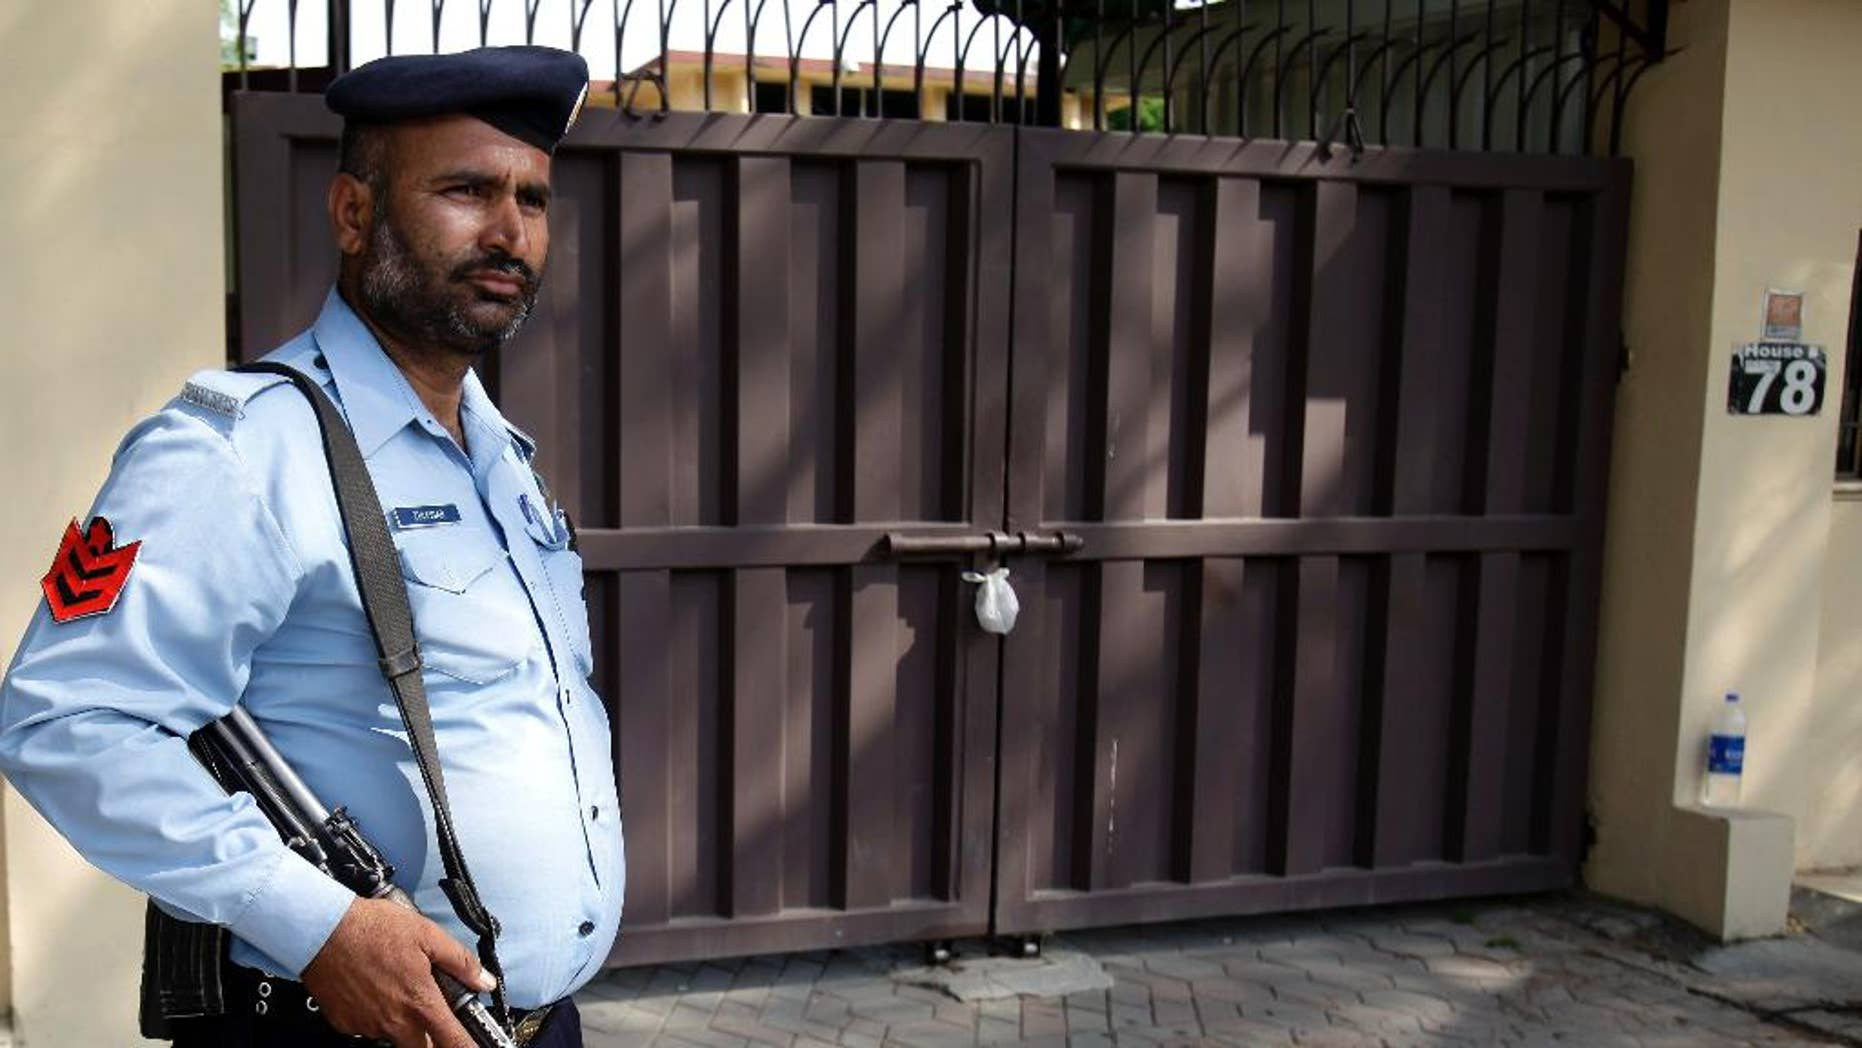 """A Pakistani police officer stands guard outside a sealed office of international aid group Save the Children , in Islamabad, Pakistan, Sunday, June 14, 2015. Pakistan's Interior Ministry has halted an order it made closing the office of Save the Children in Islamabad, an official said Sunday. On Thursday, Pakistan shuttered the group's main office in the capital for allegedly """"violating its charter.""""  (AP Photo/Anjum Naveed)"""